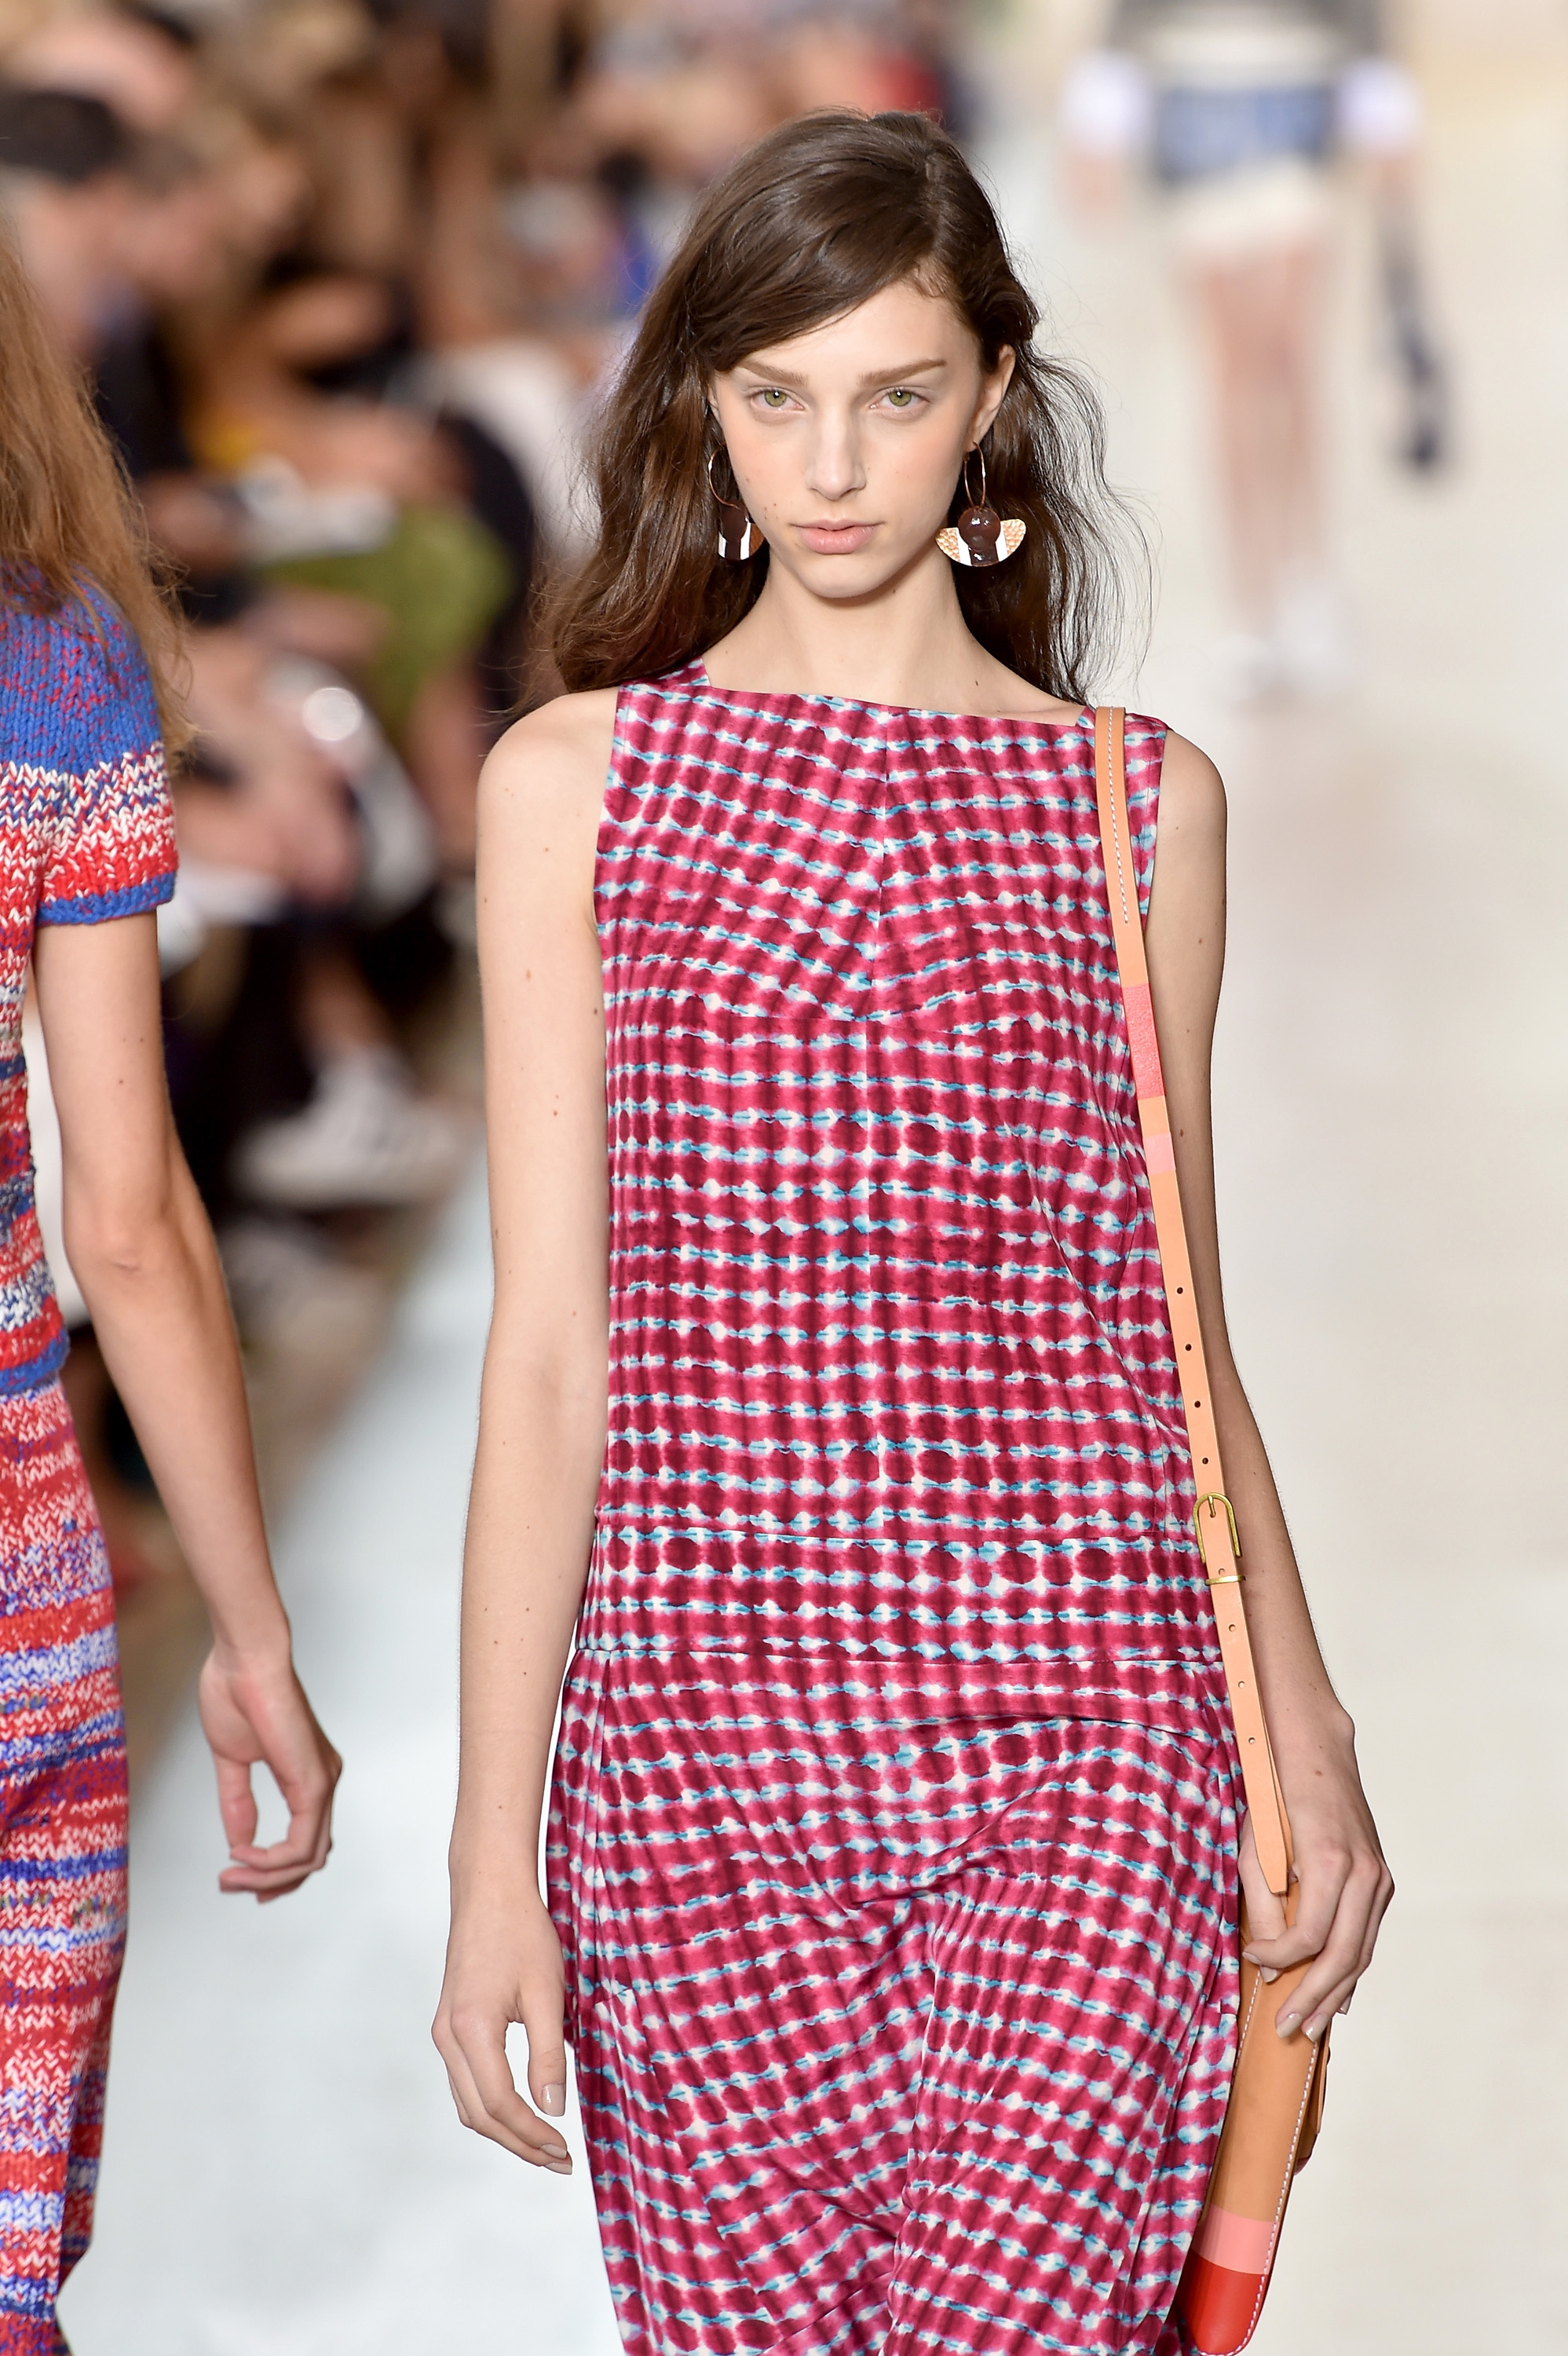 Tory Burch's spring 2015 collection 10